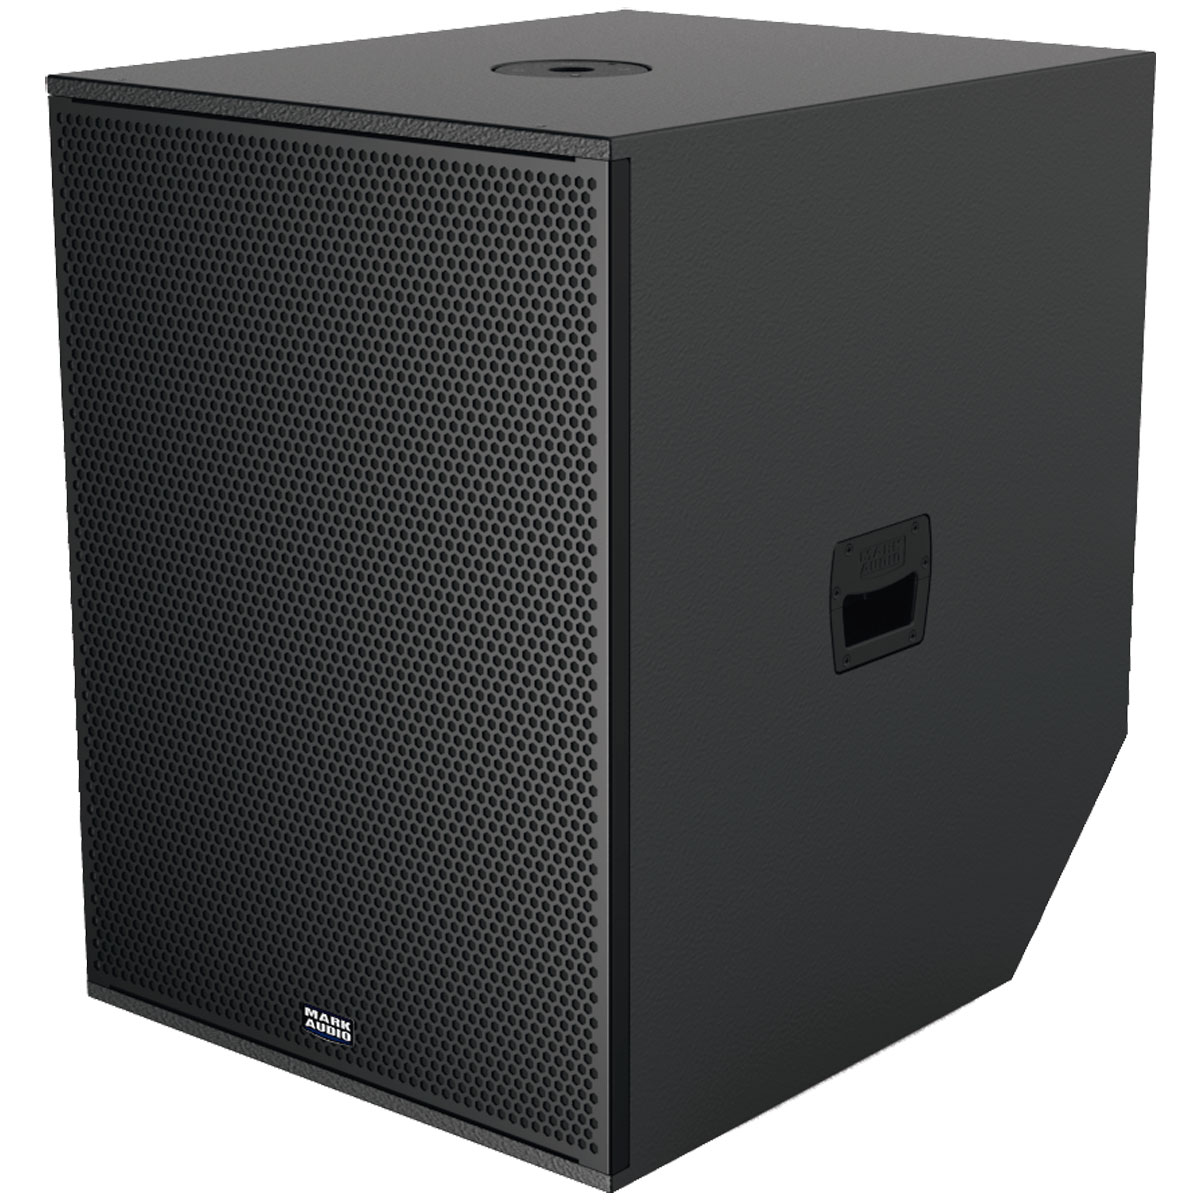 MKS1880 - Subwoofer Passivo 800W MKS 1880 - Mark Audio